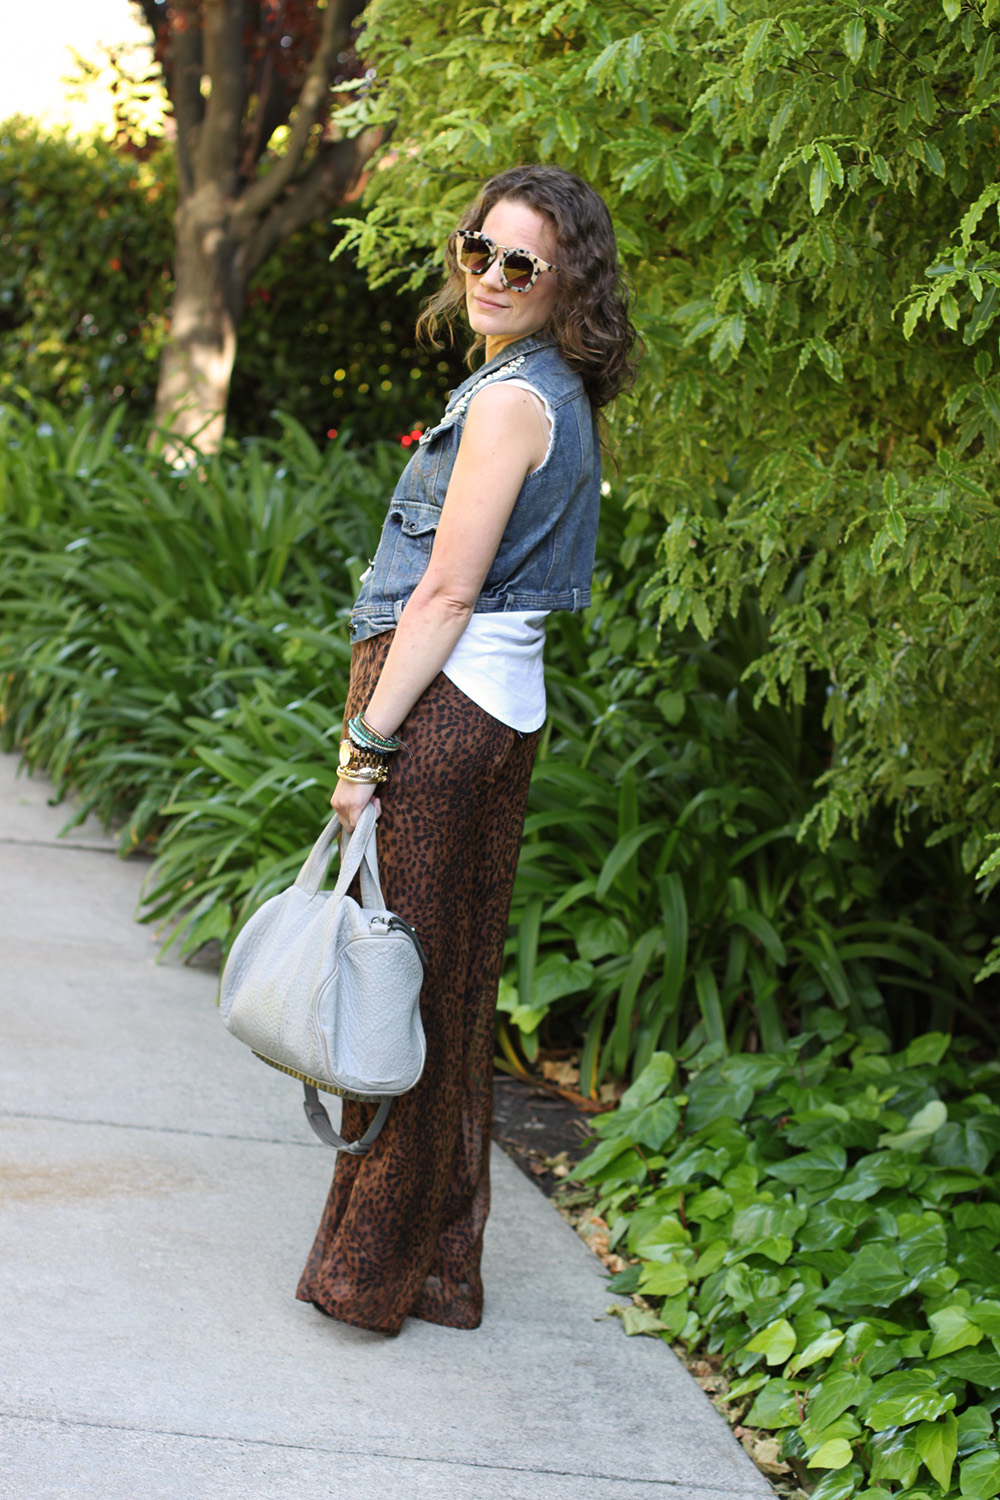 how to wear palazzo pants tip #4: balance it out with layers on top